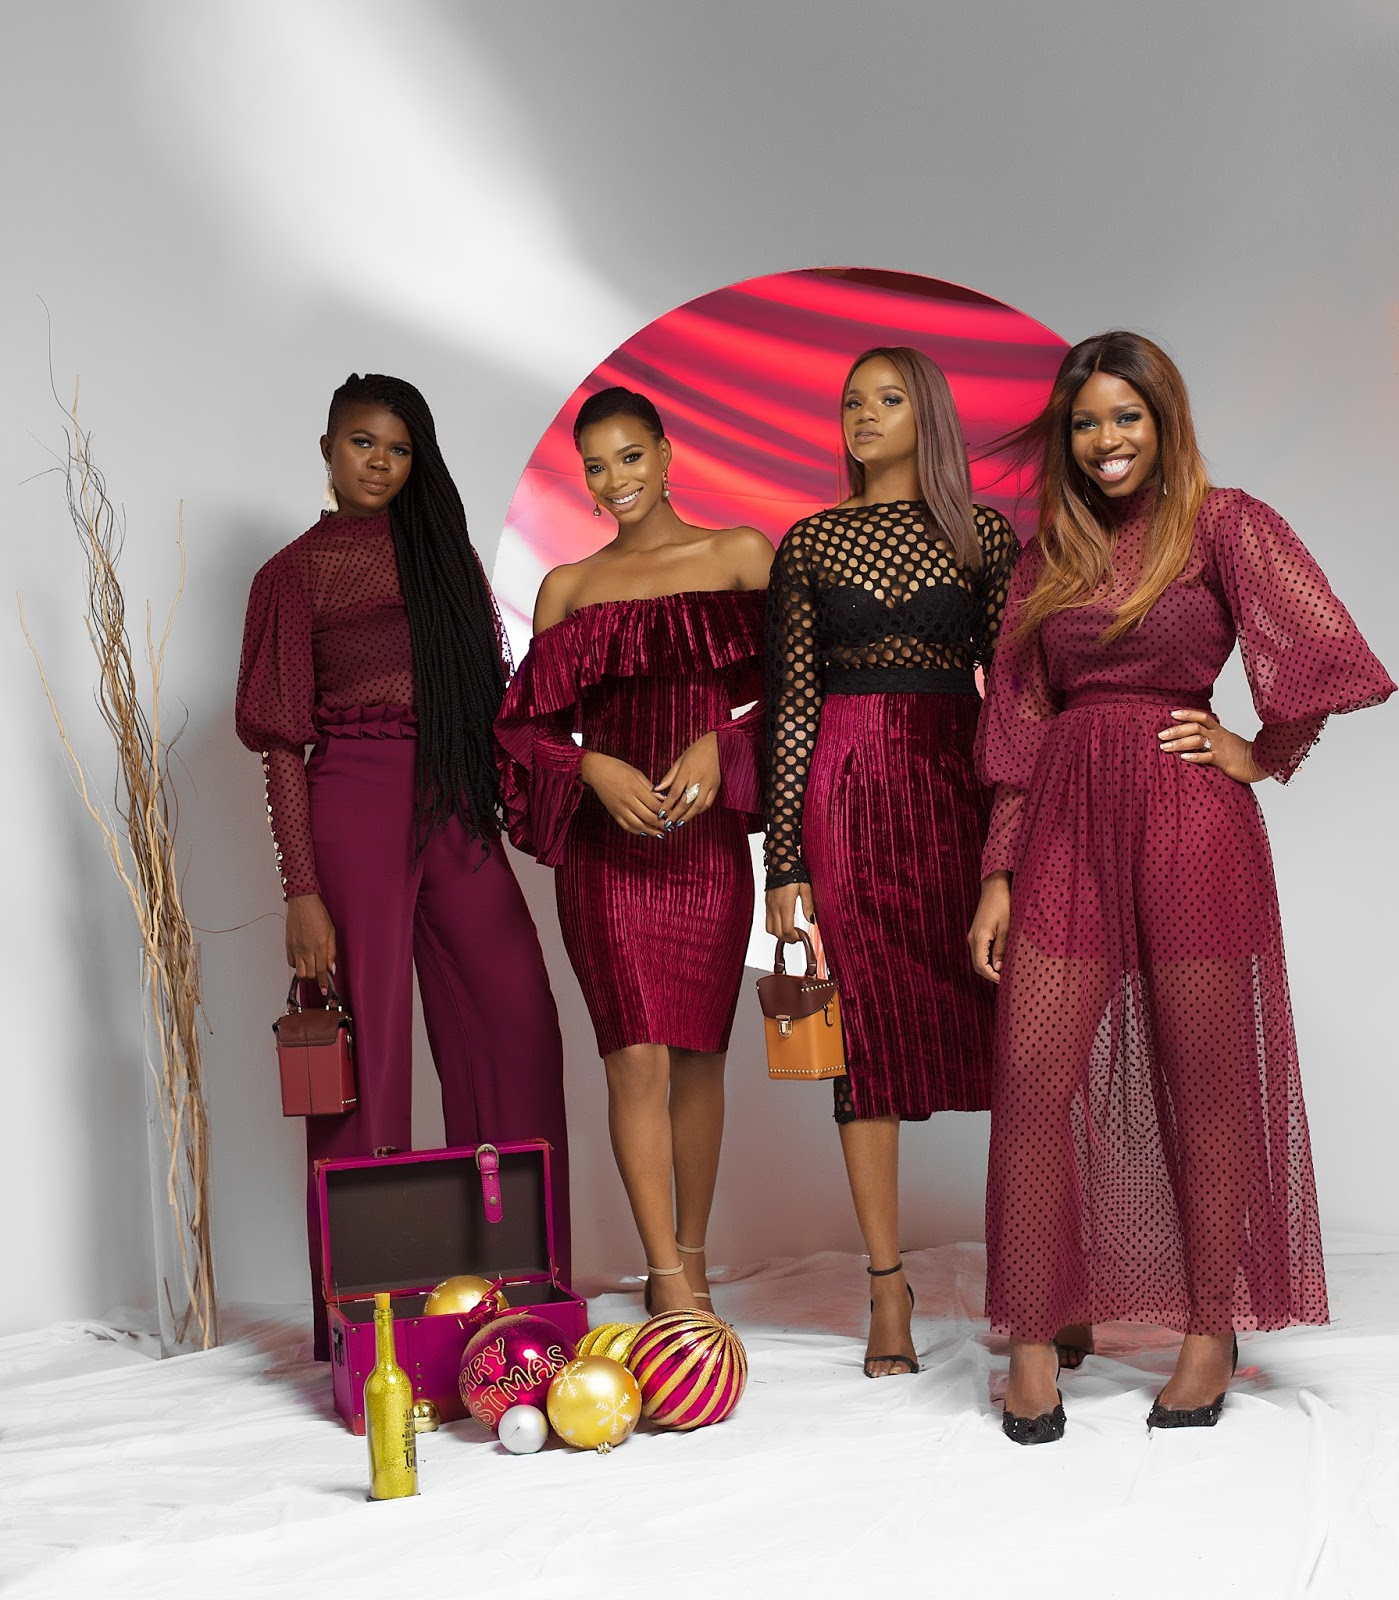 Christmas Day Burgundy Theme Looks